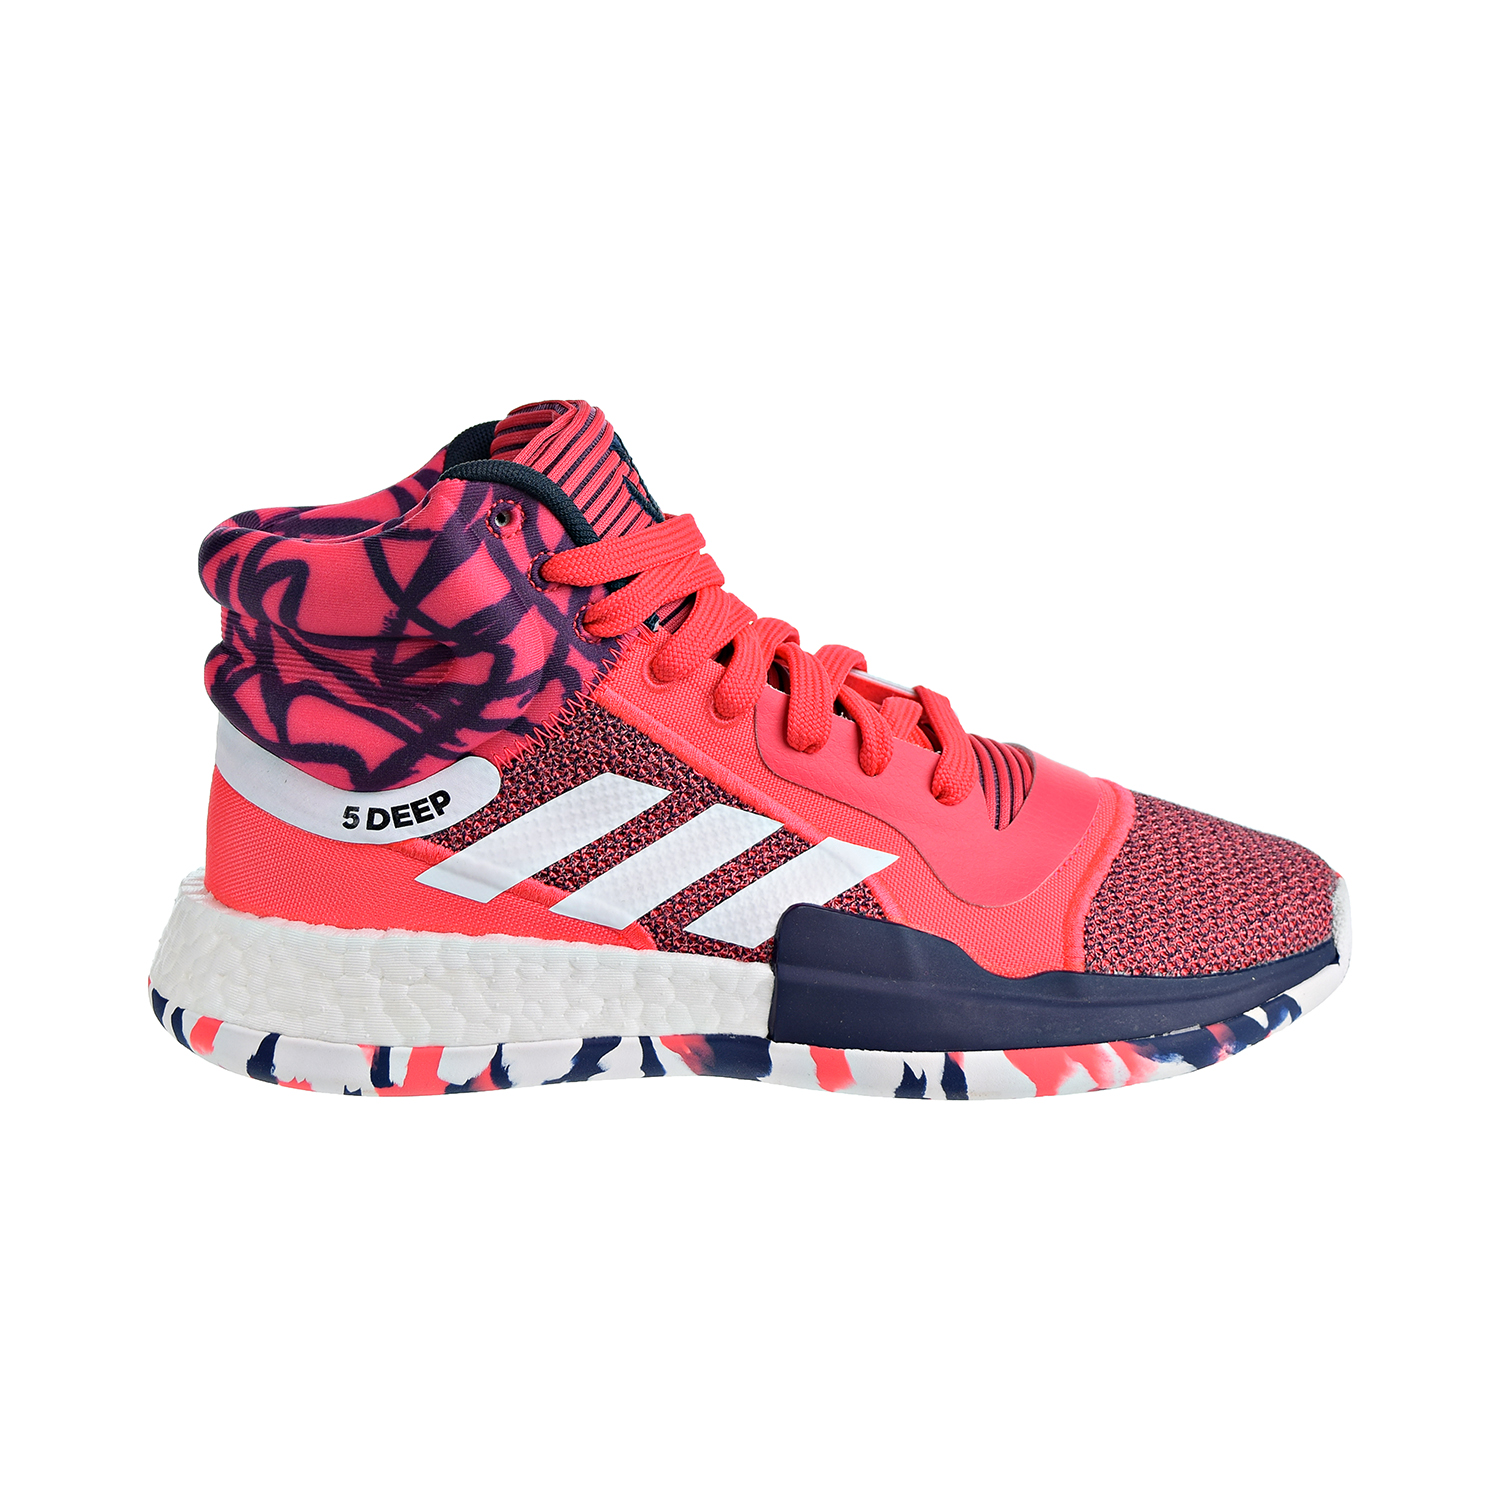 d82bf7f6dc82 Details about Adidas Marquee Boost Men s Basketball Shoes Shock Red White Navy  G27737